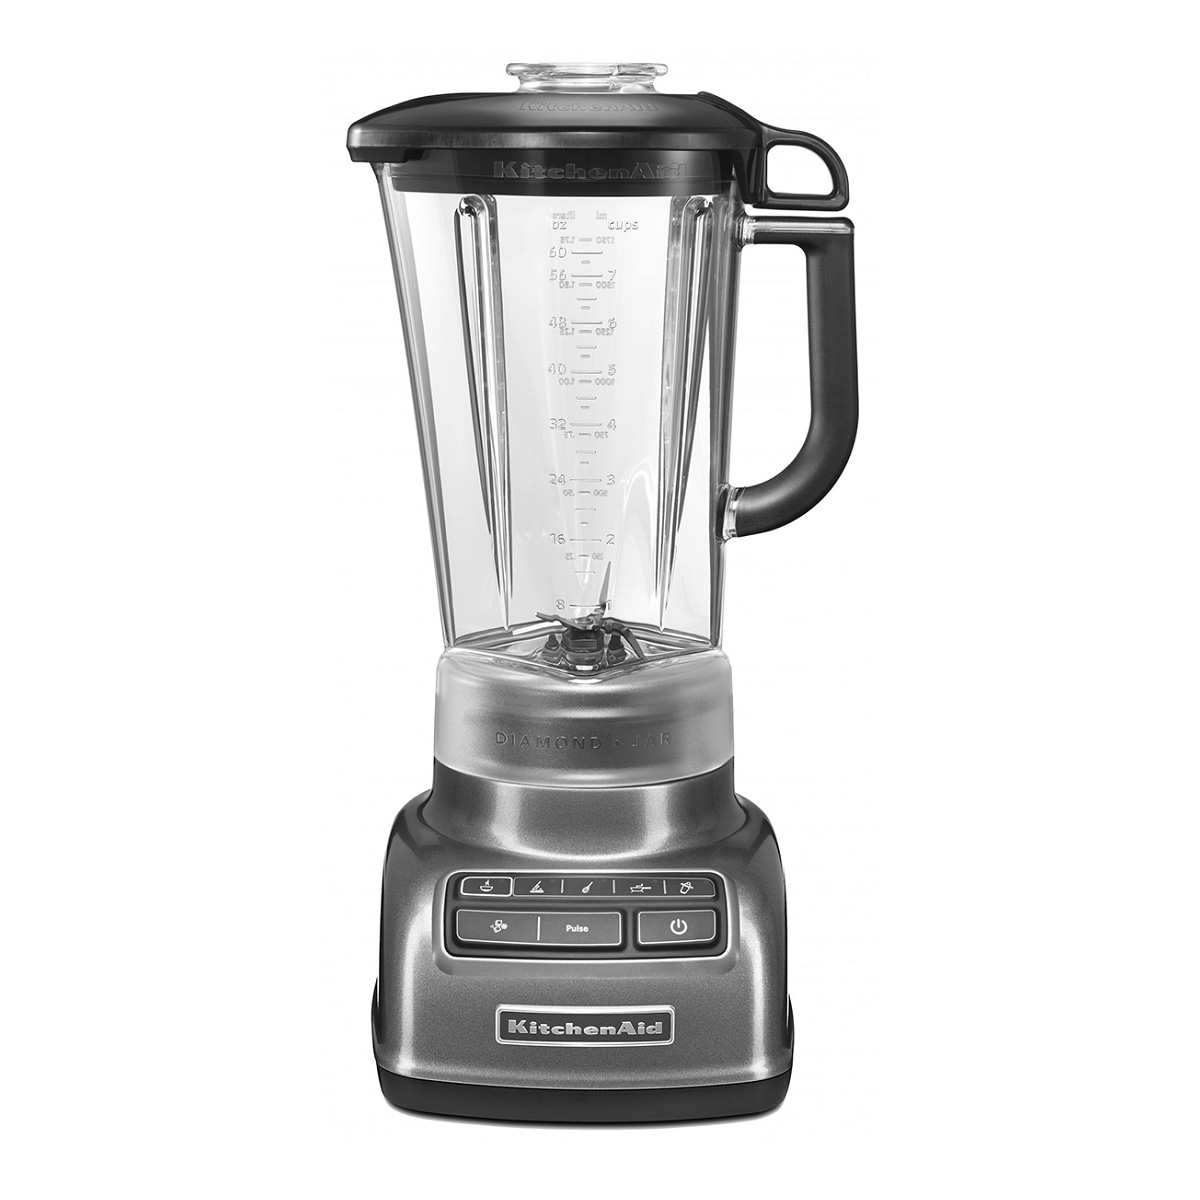 Kitchenaid 5KSB1586AQG Blender